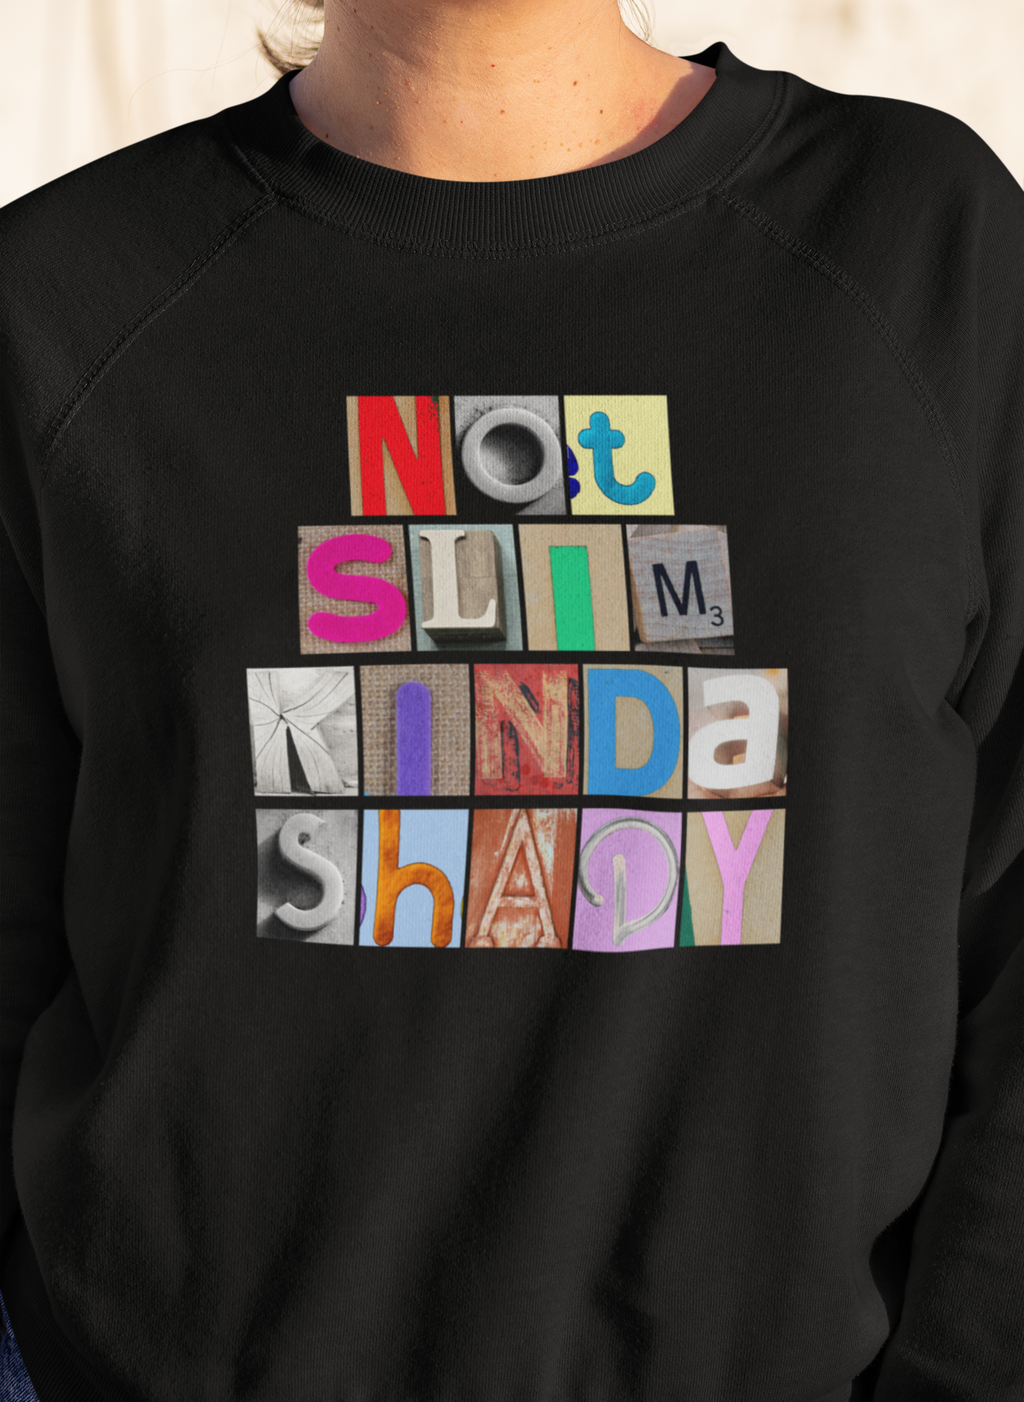 The Not Slim Kinda Shady Shirt